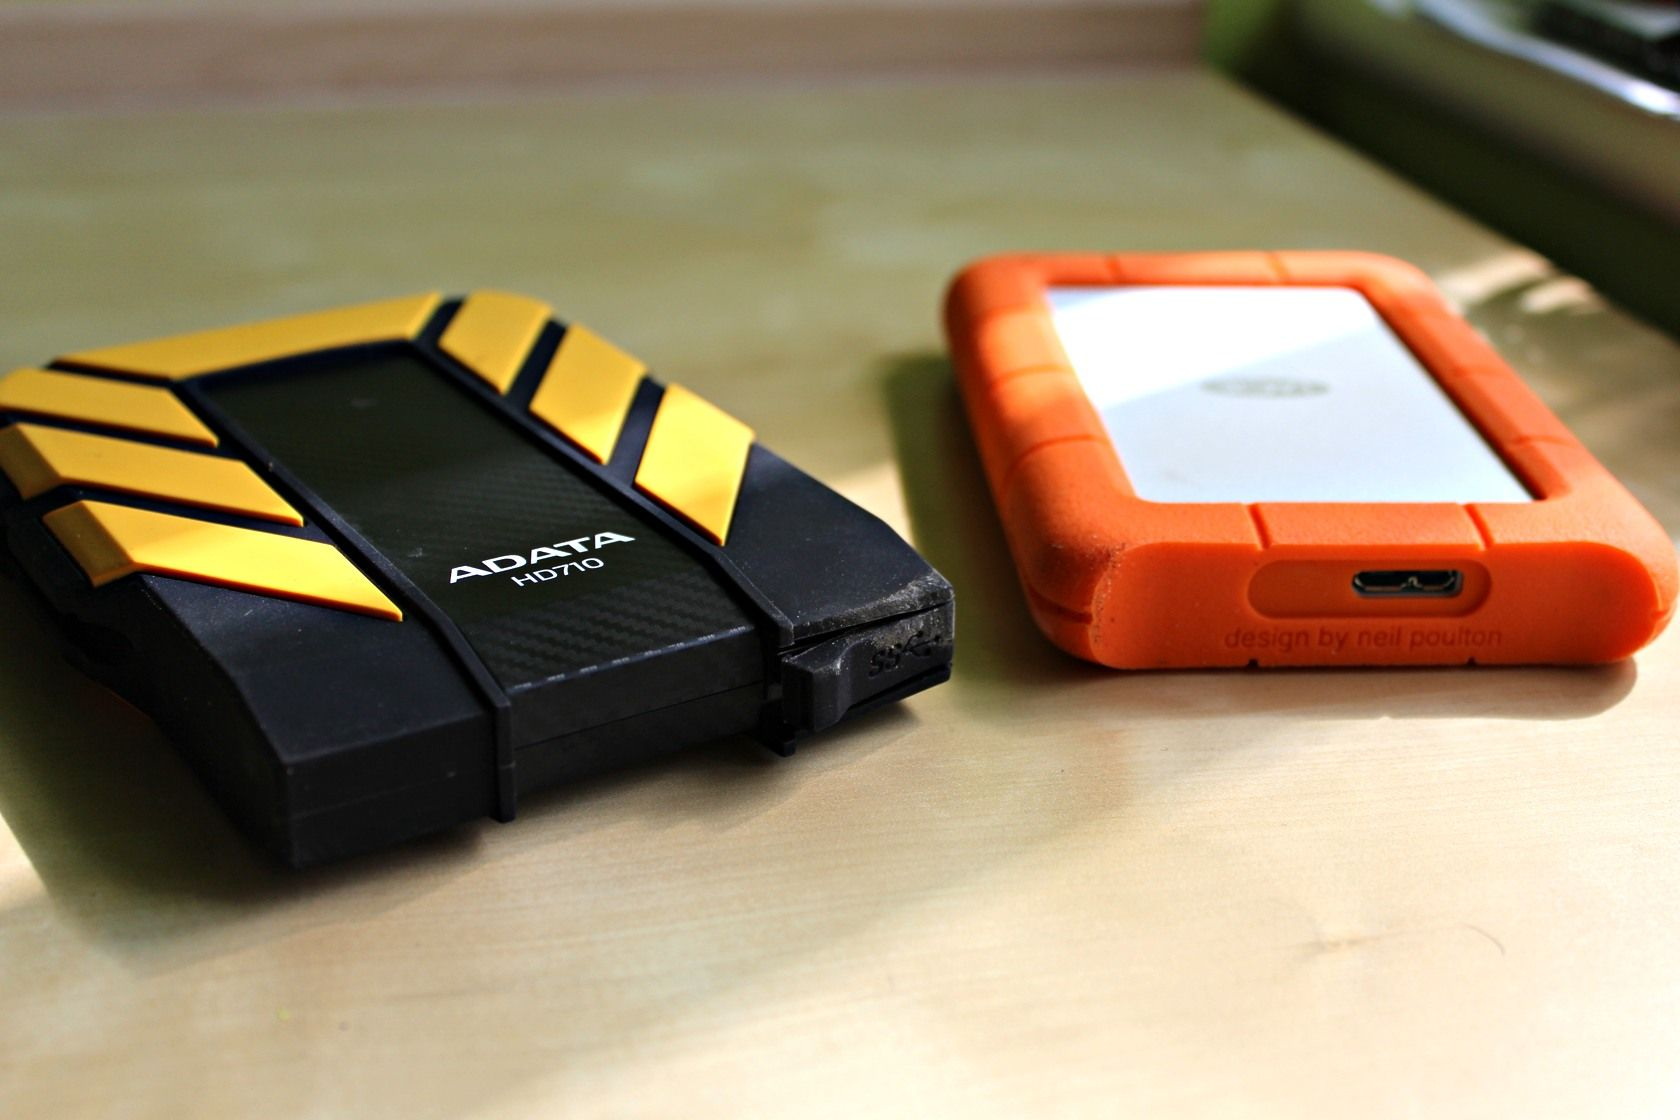 lacie rugged mini hard drive review